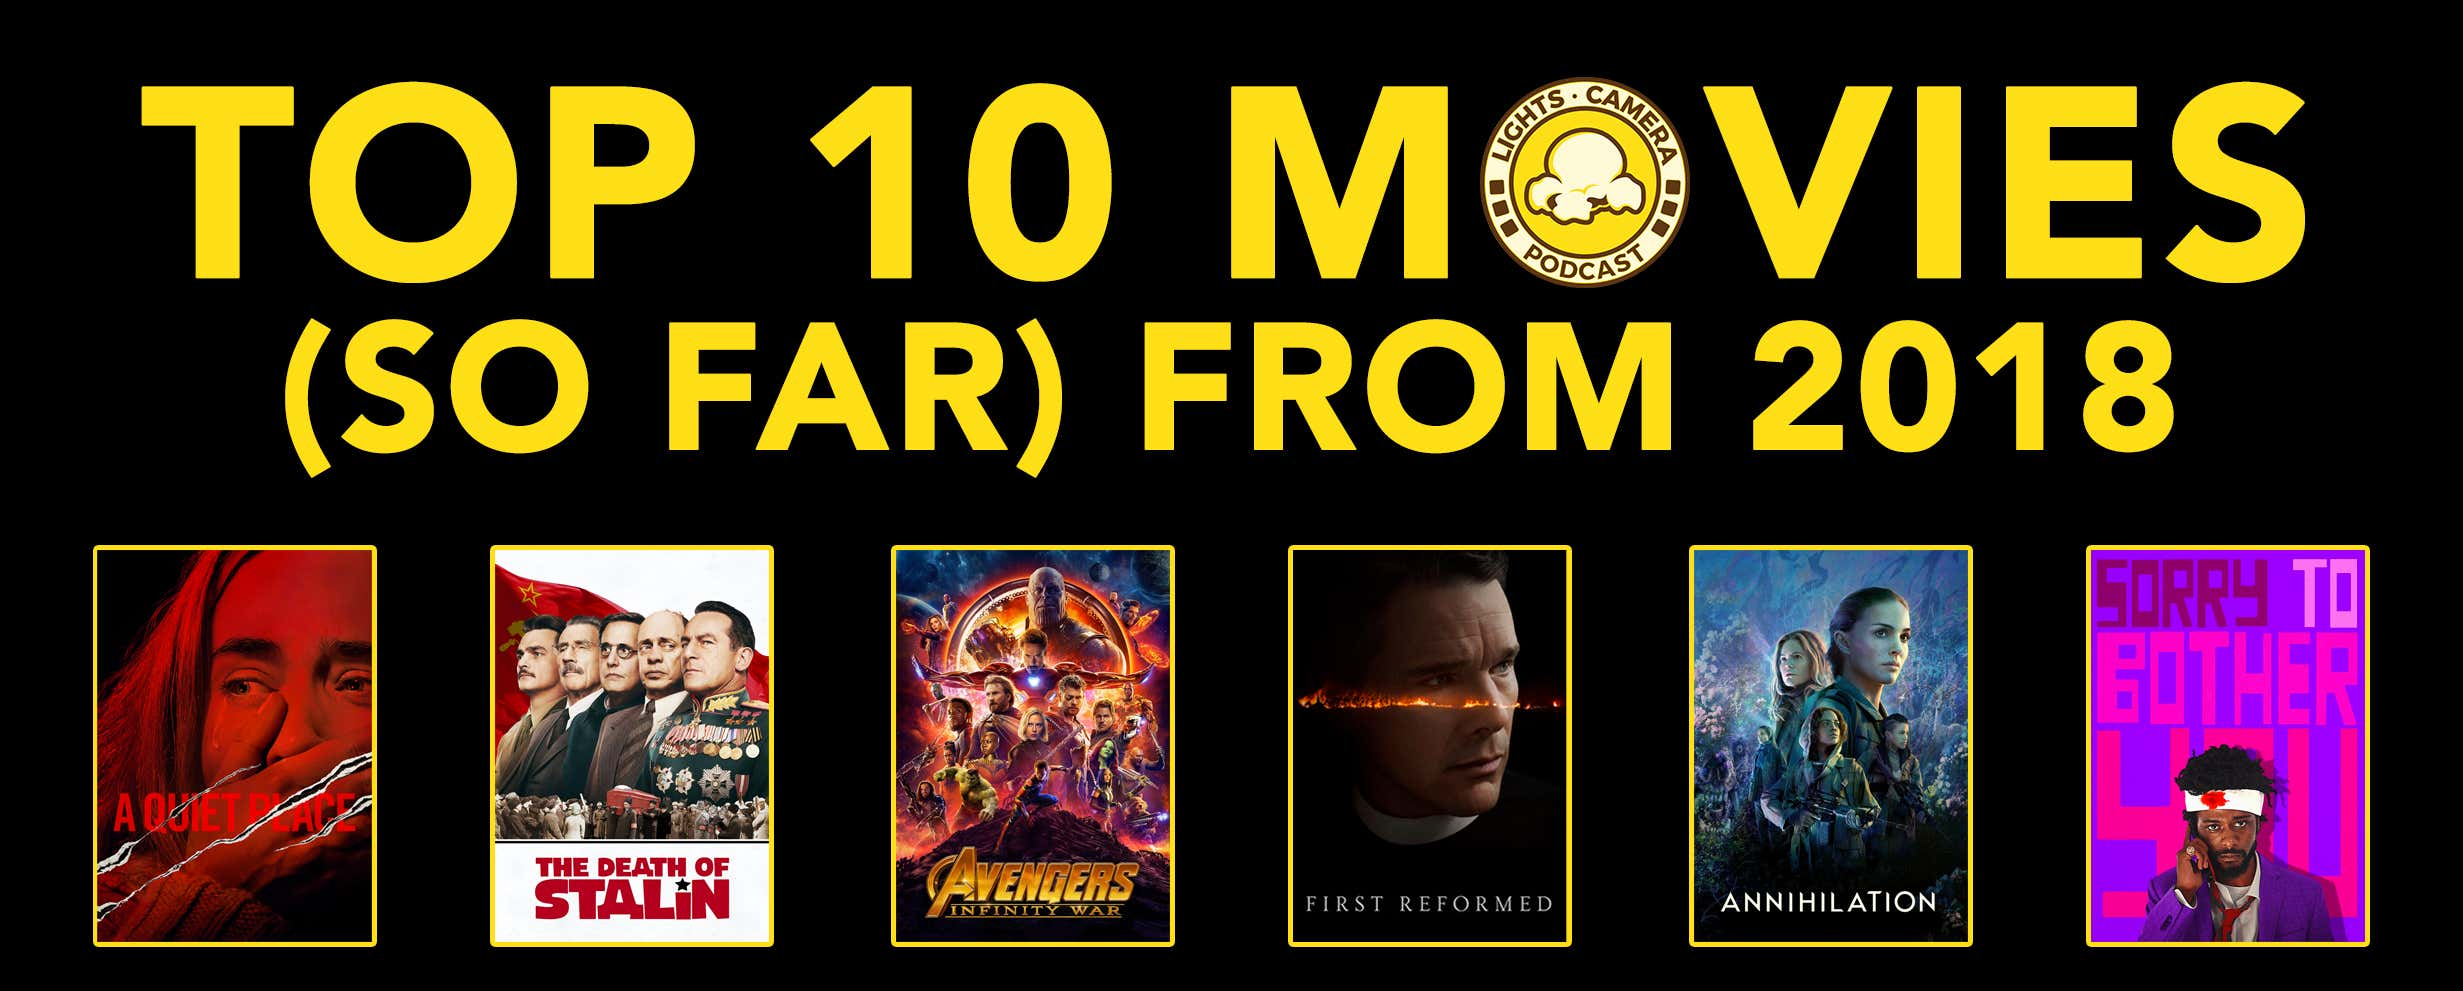 Top 10 Movies (So Far) From 2018 - Barstool Sports